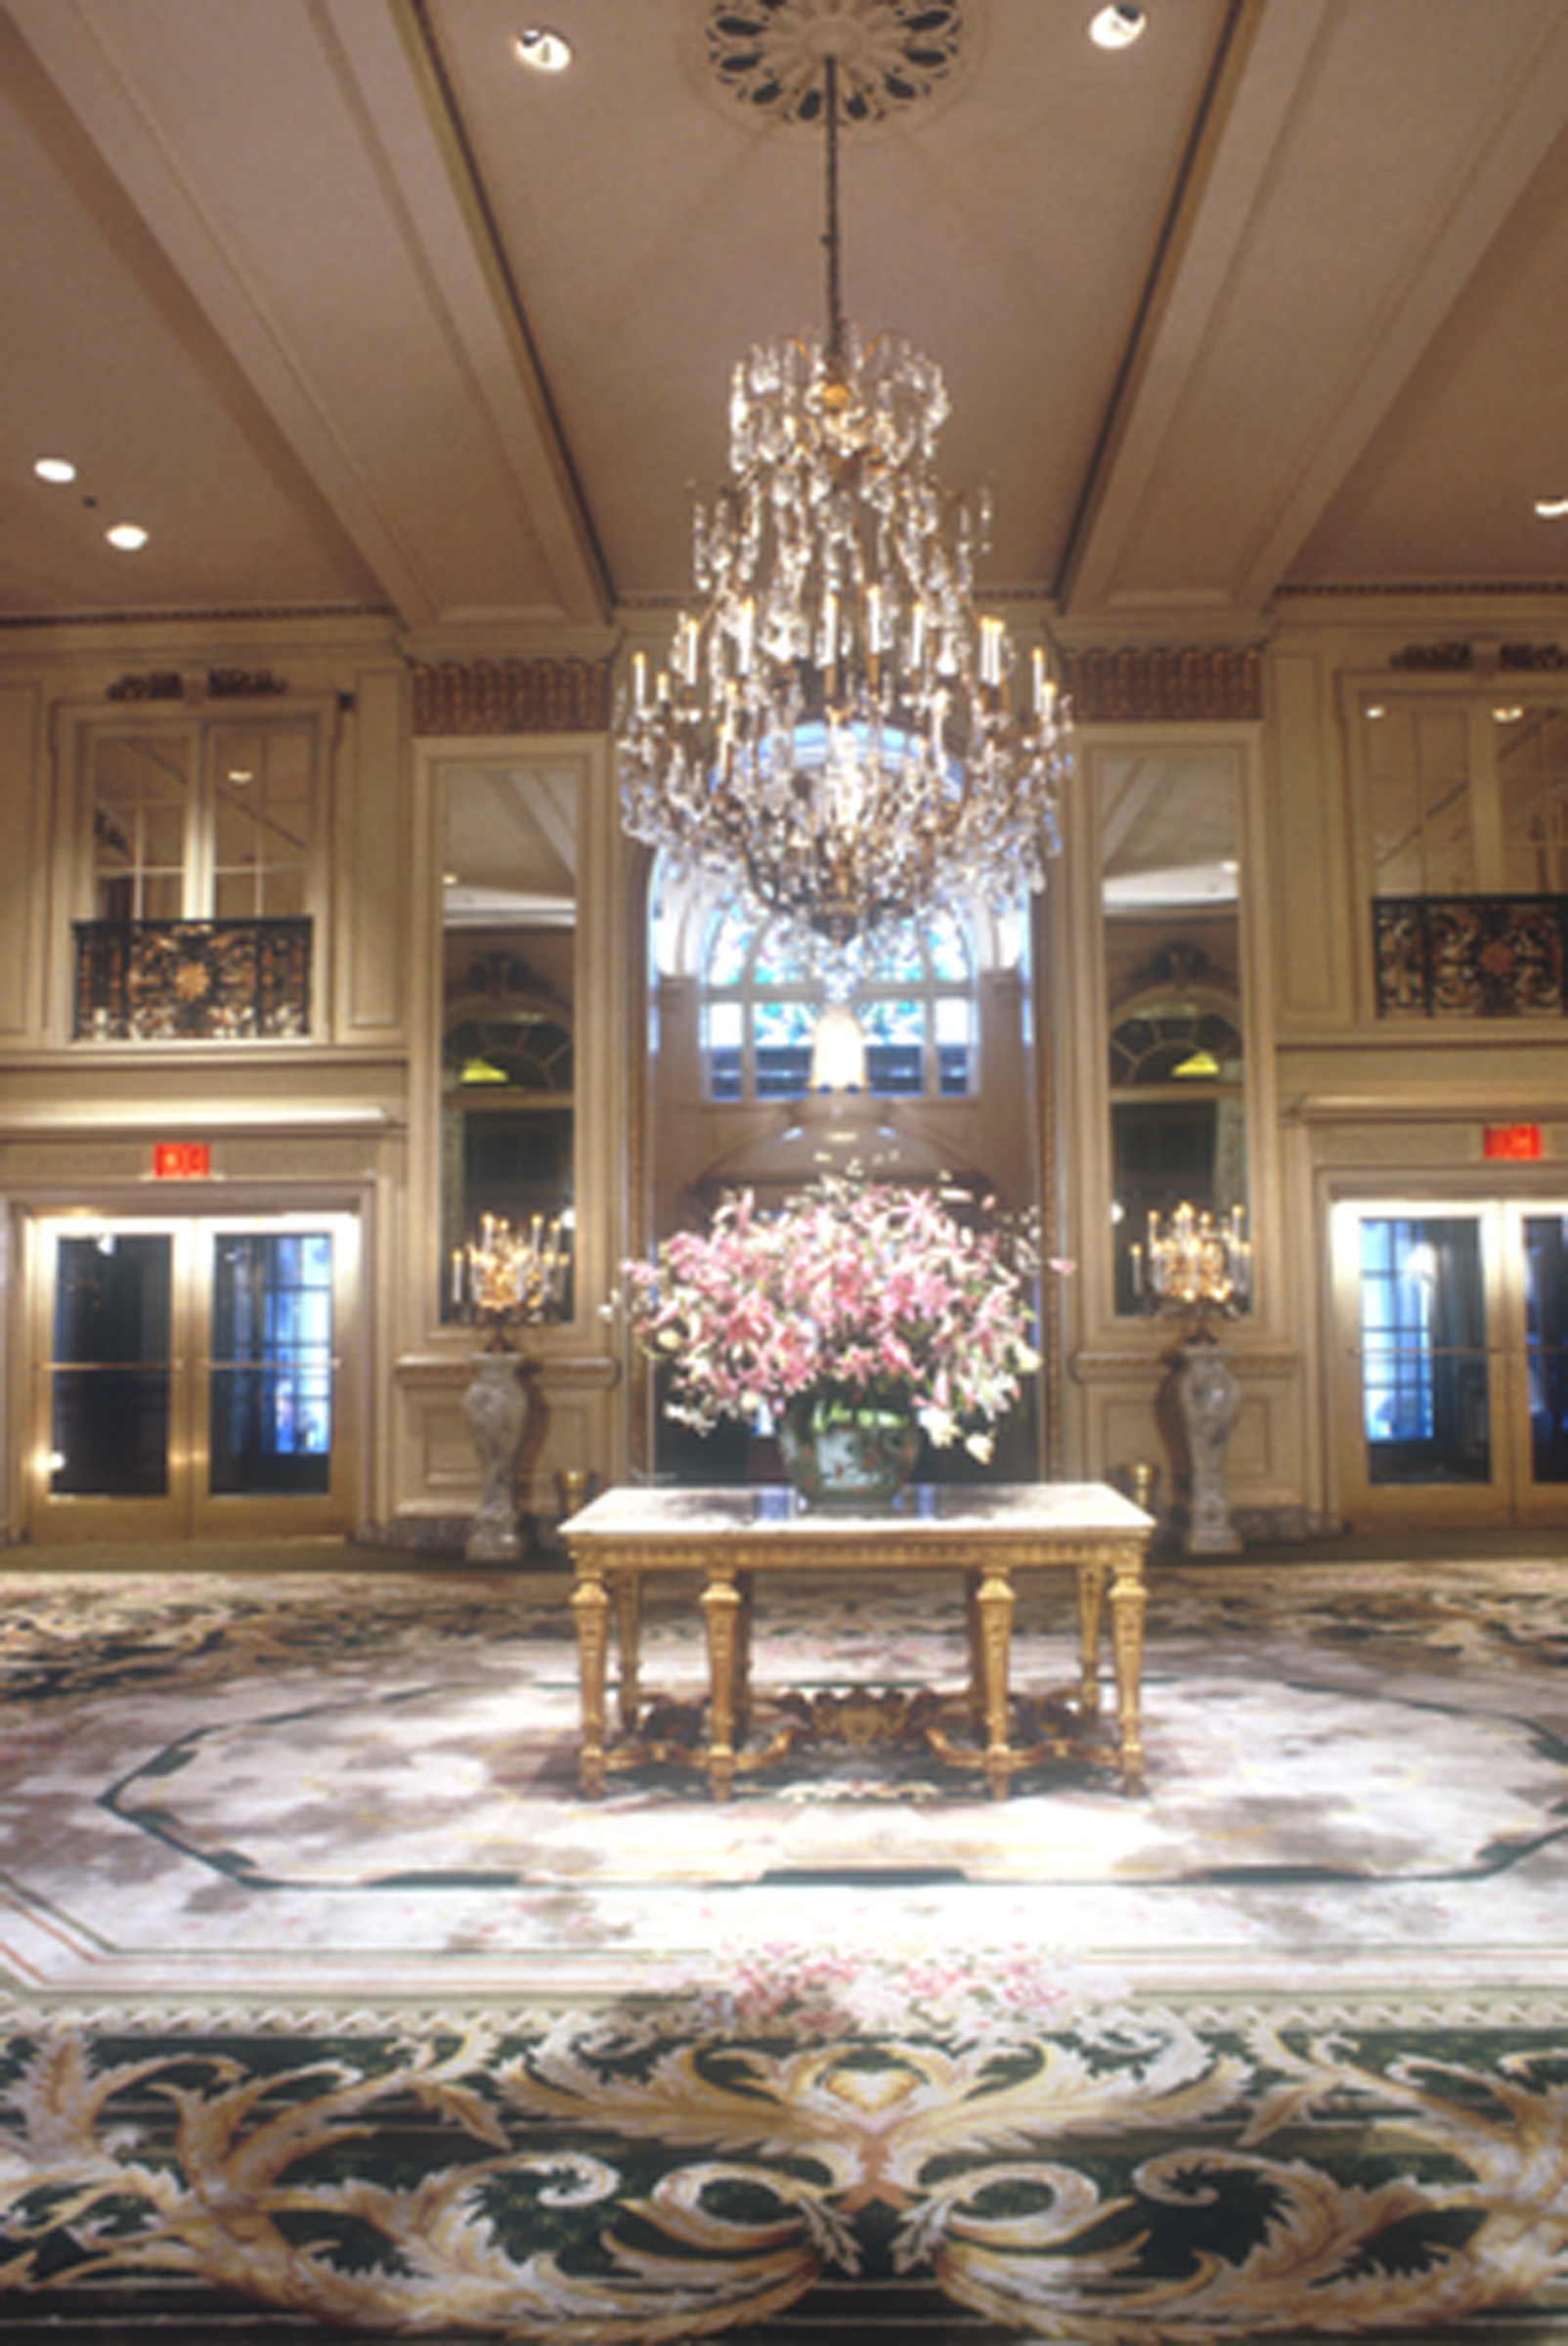 9706 - Plaza - Interior Hall with Flowers.jpg